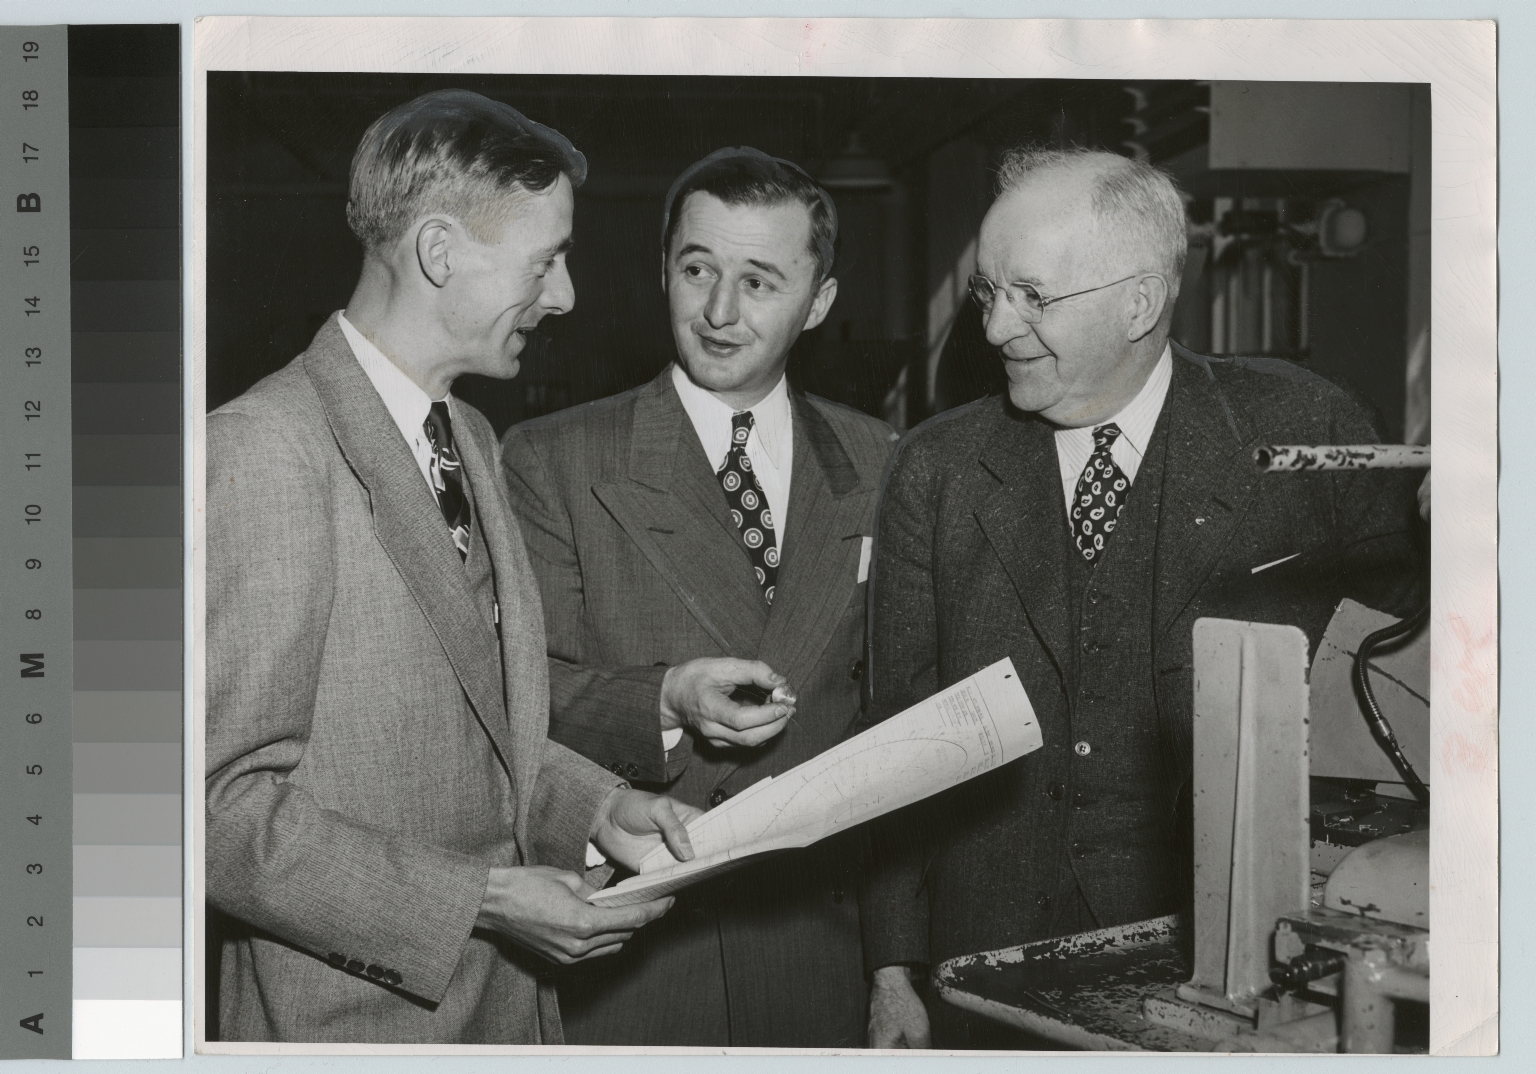 Donald K. Smith with Alfred L. Davis and Jessie T. George, Rochester Institute of Technology